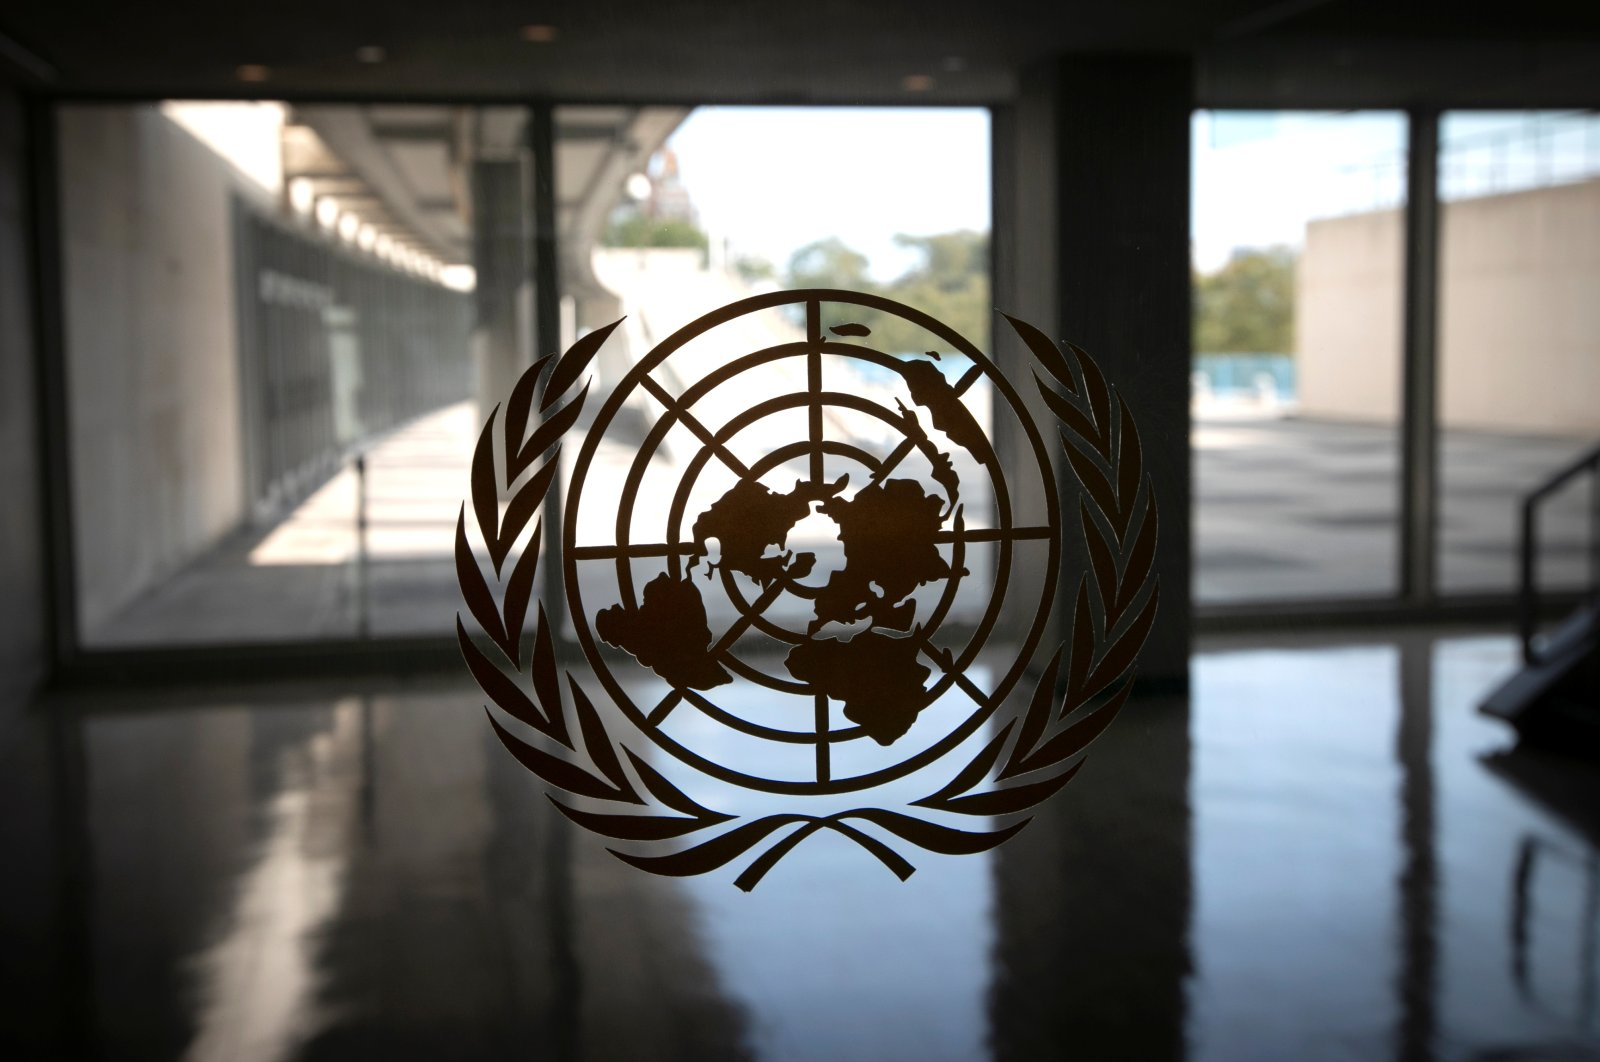 The United Nations logo is seen on a window in an empty hallway at U.N. headquarters during the 75th annual U.N. General Assembly high-level debate, which is being held mostly virtually due to the coronavirus pandemic in New York, U.S., Sept. 21, 2020. (Reuters Photo)